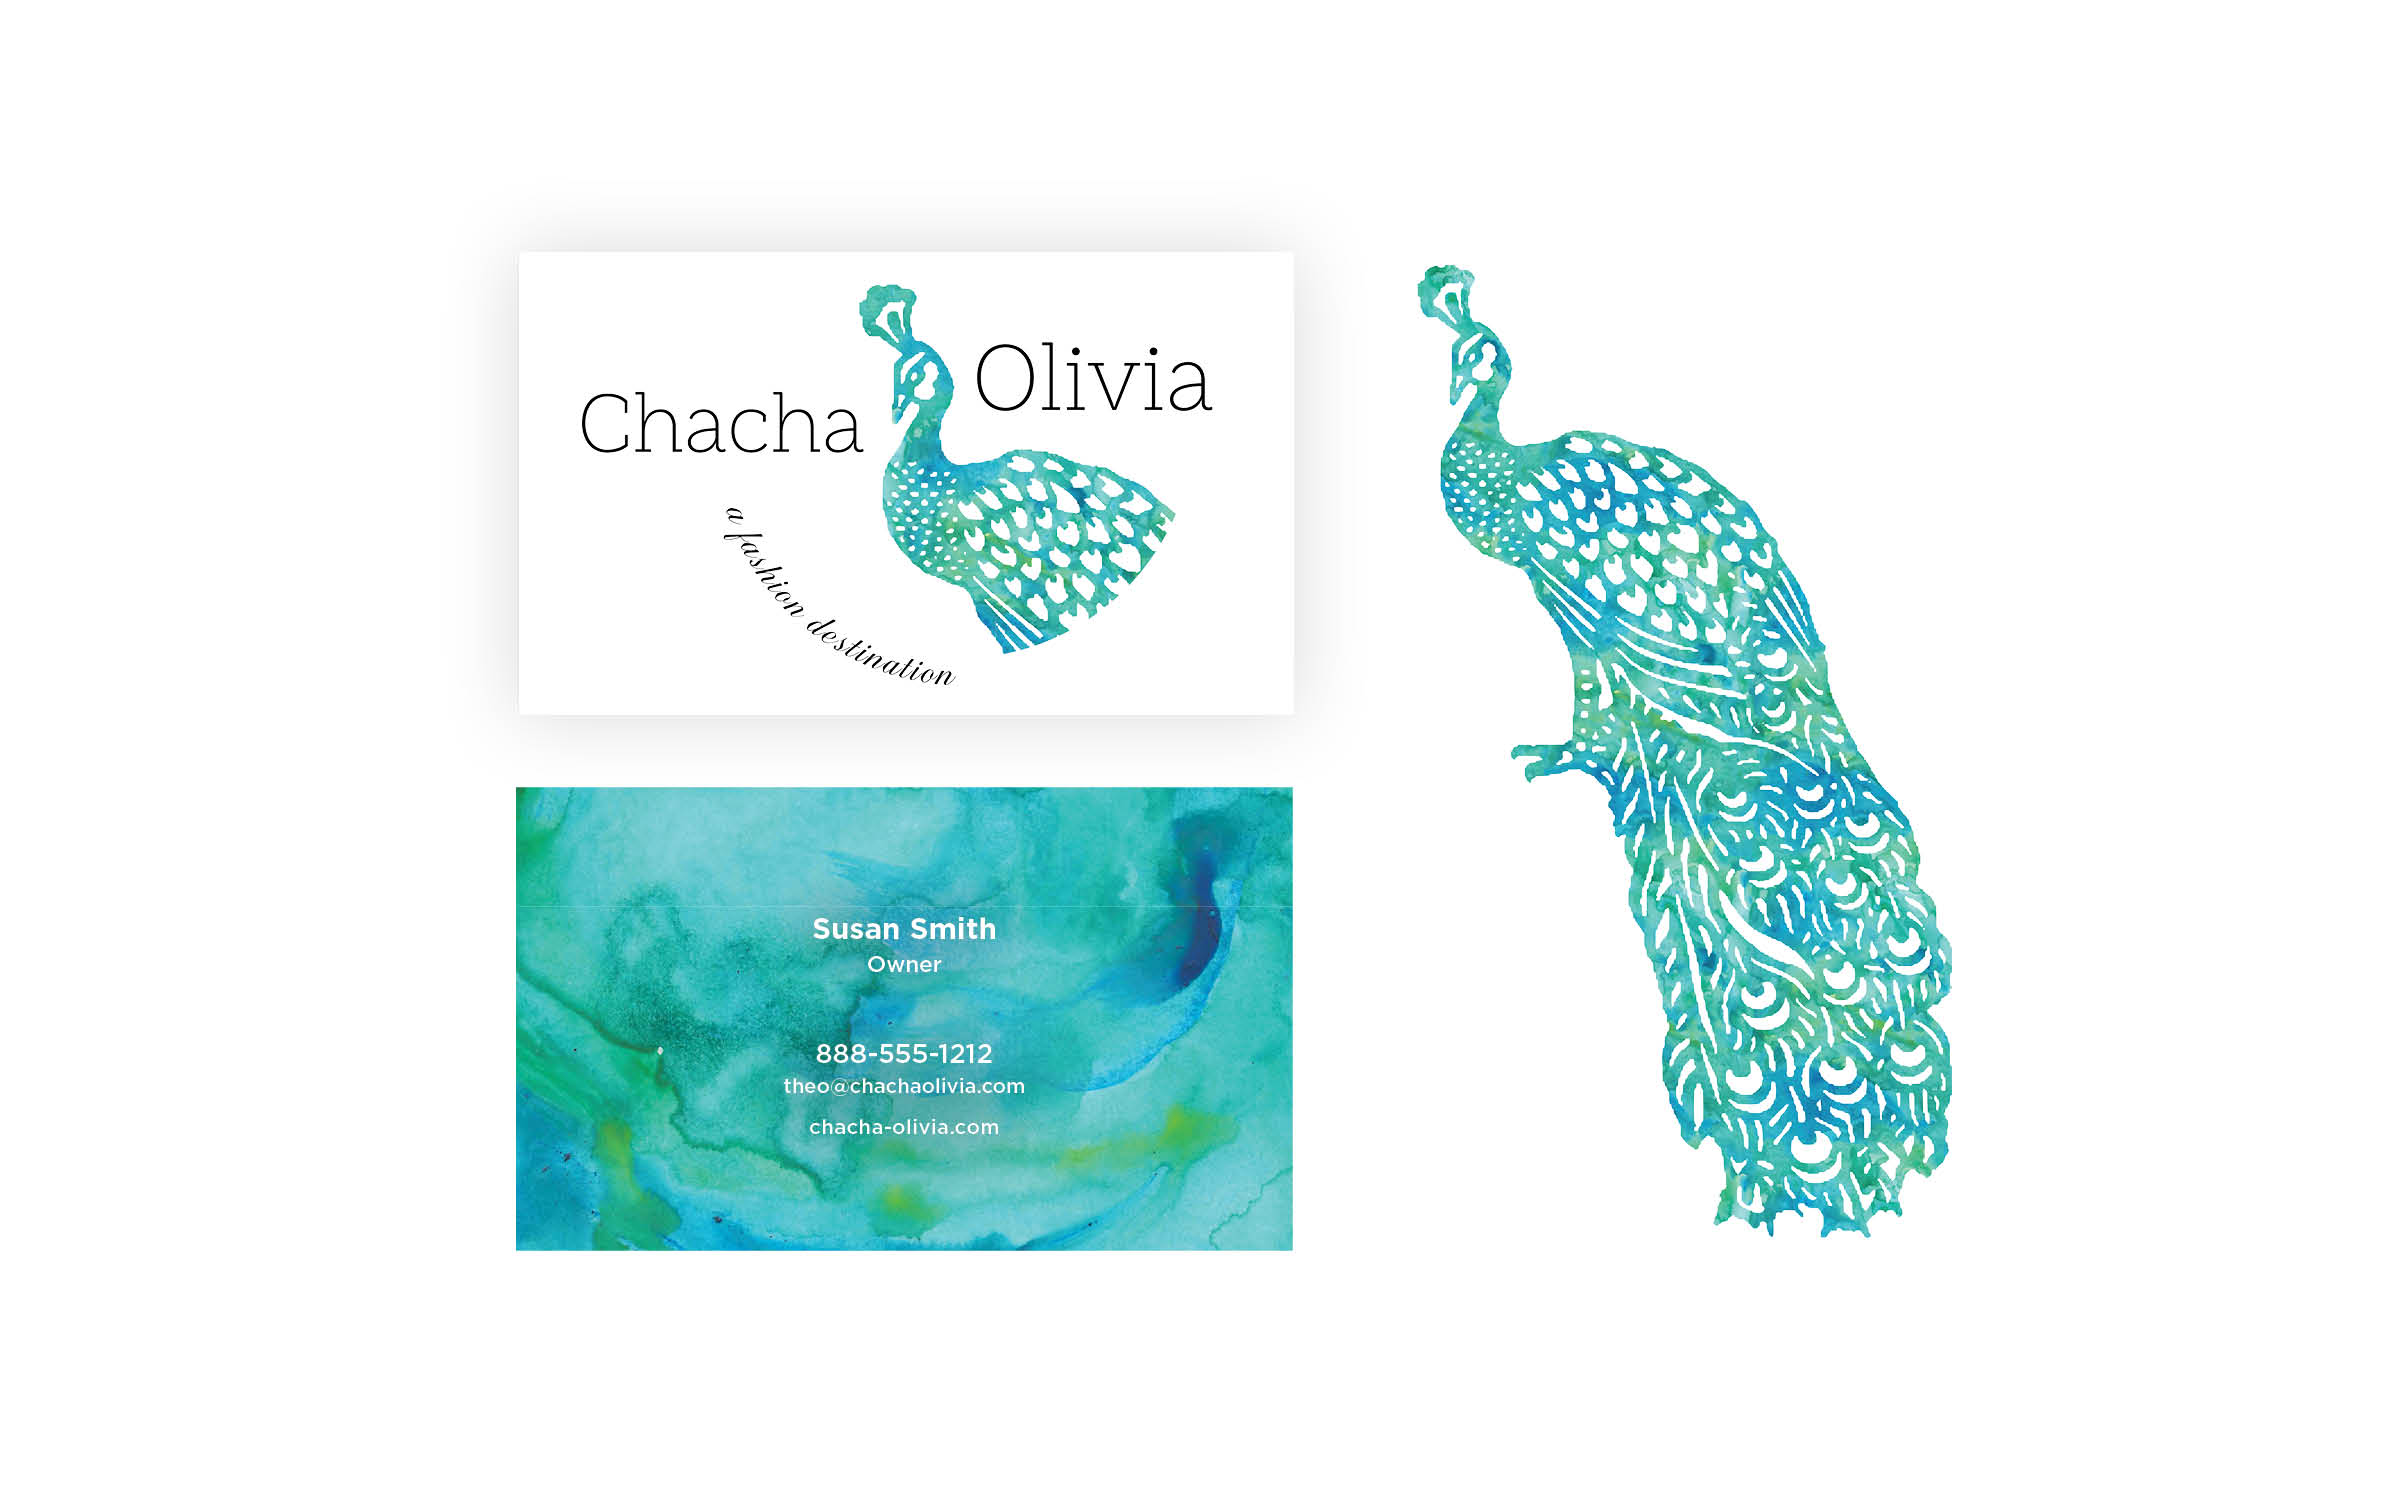 chacha olivia for squarespace4 jpg [ 2400 x 1500 Pixel ]